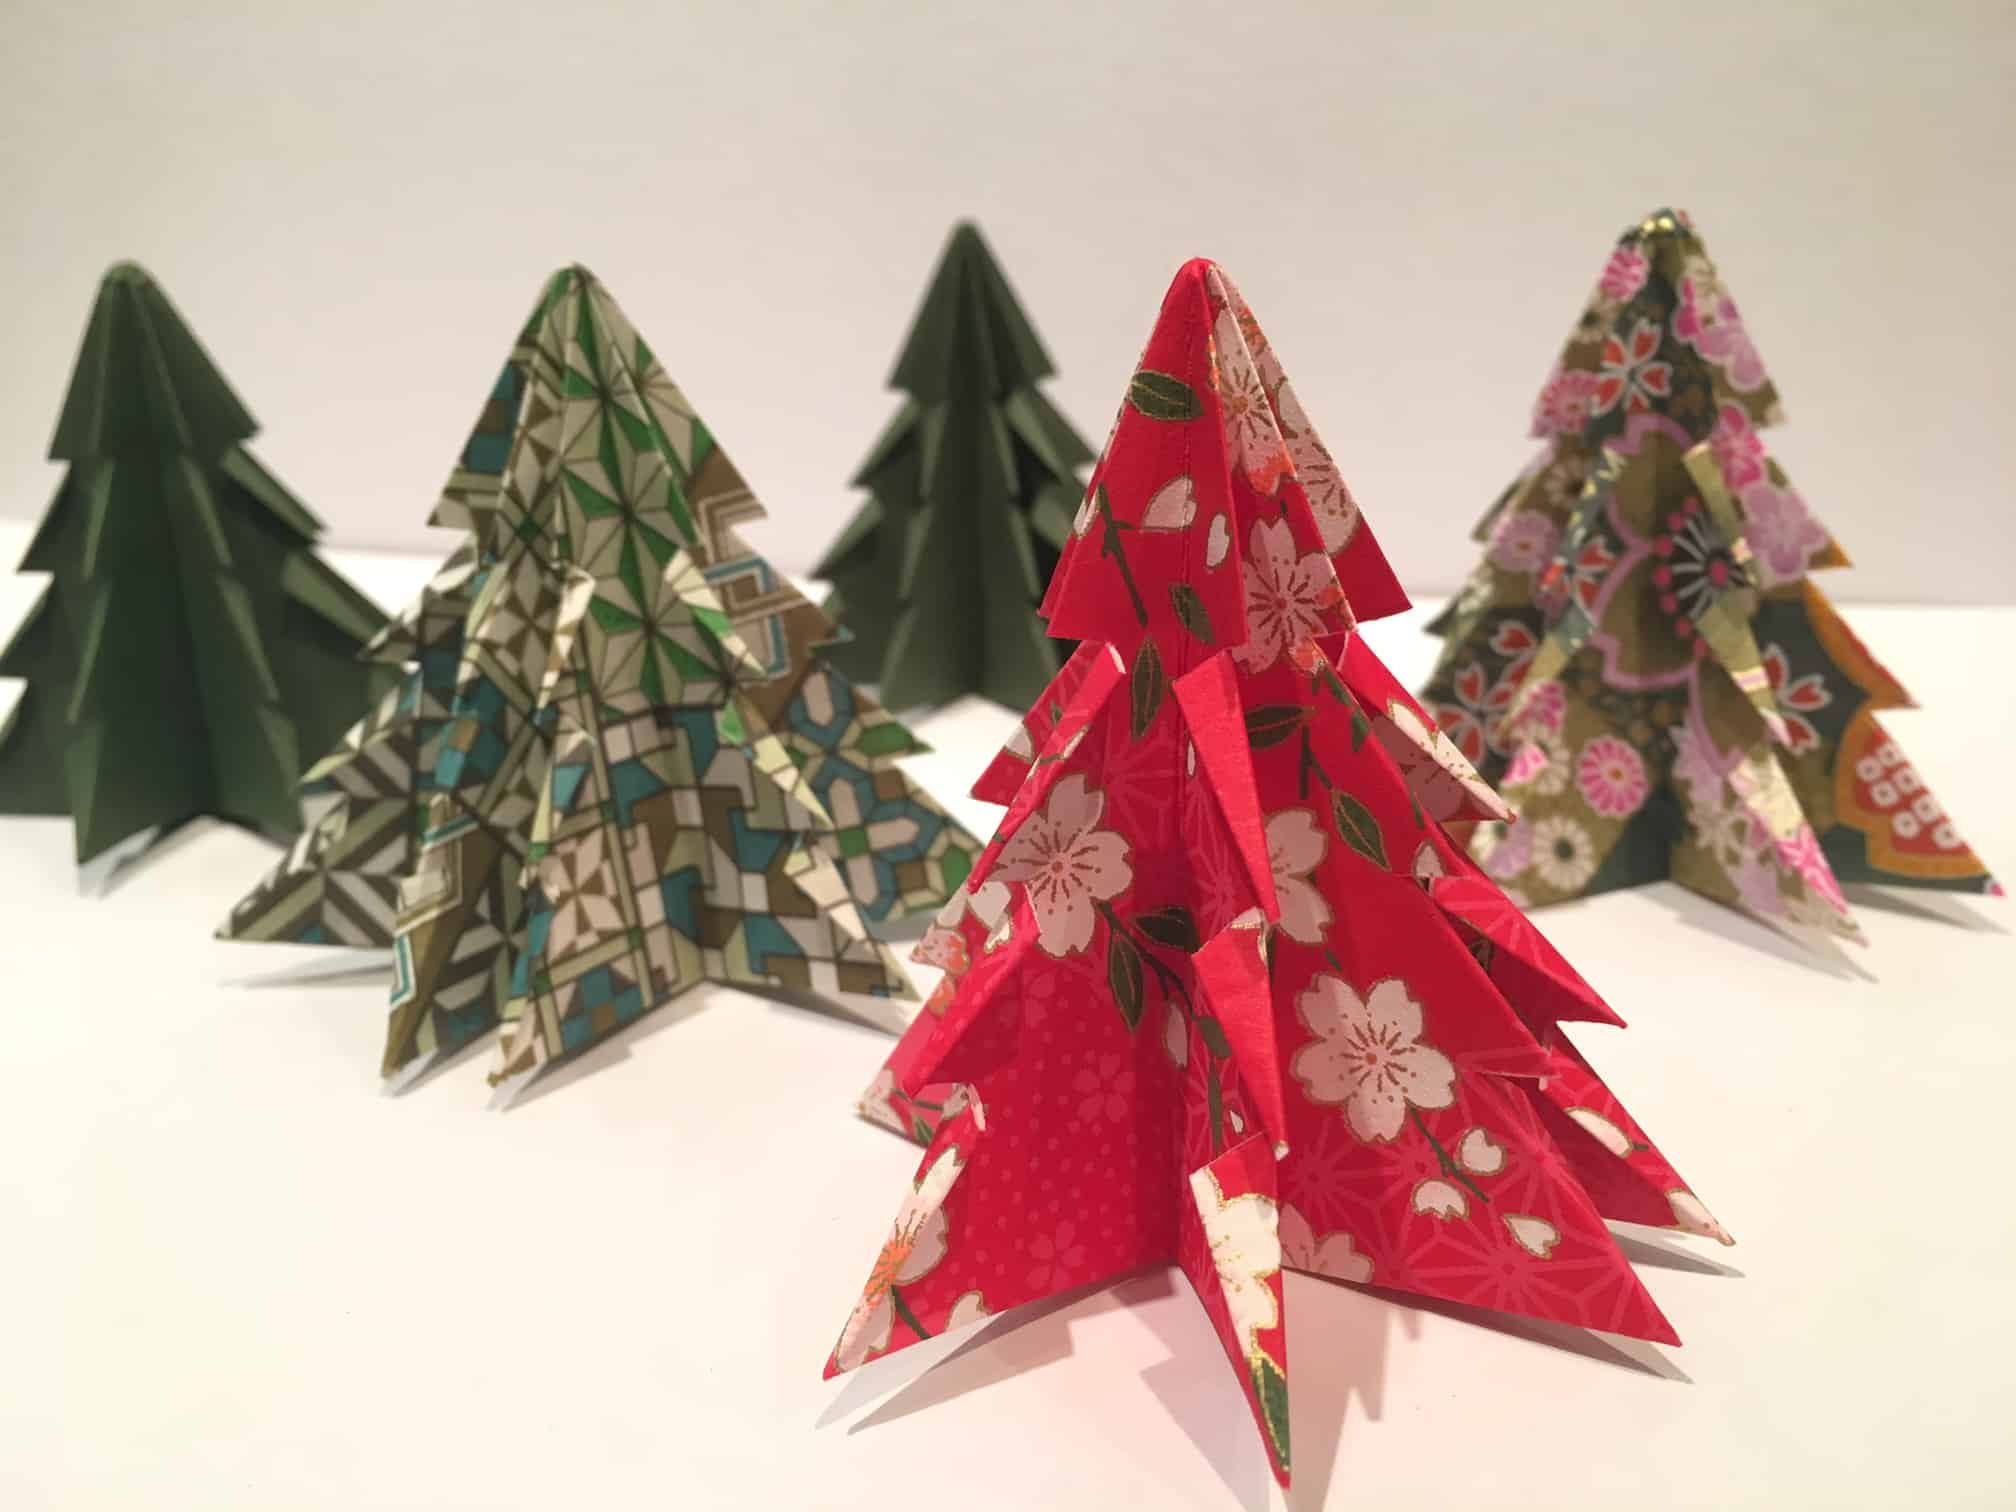 A DIY Christmas: How to Make Origami Christmas Decorations